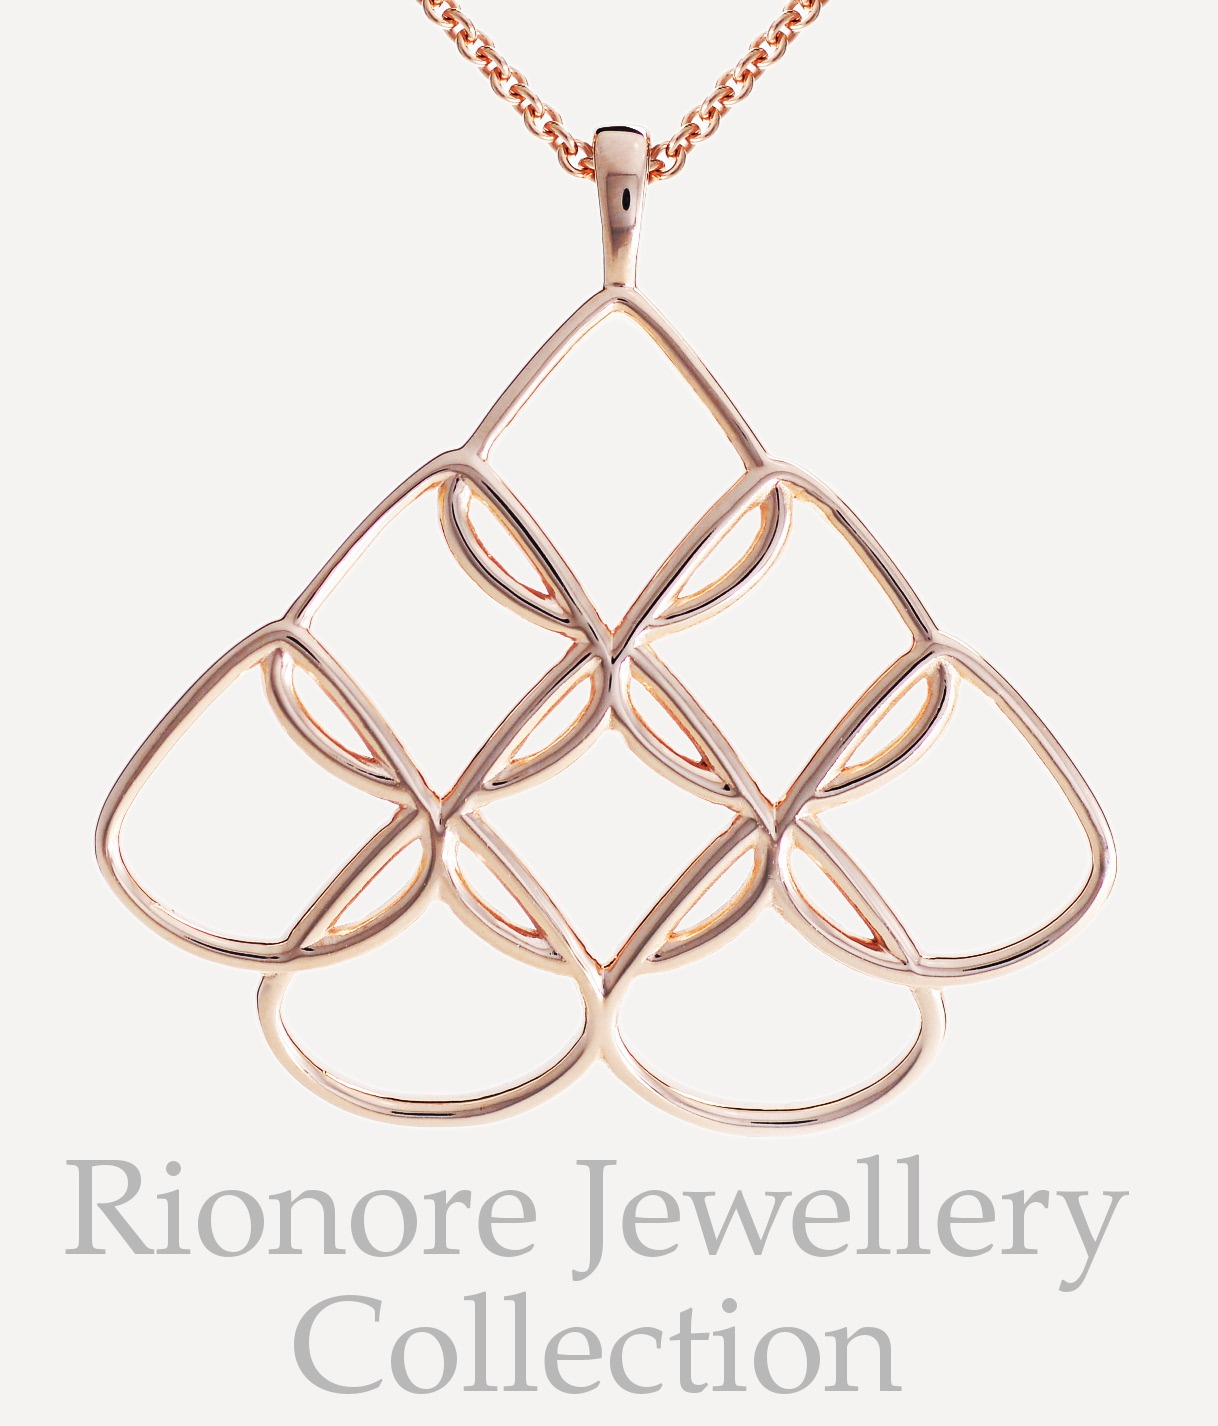 Rionore Designer jewellery in sterling silver and rose gold